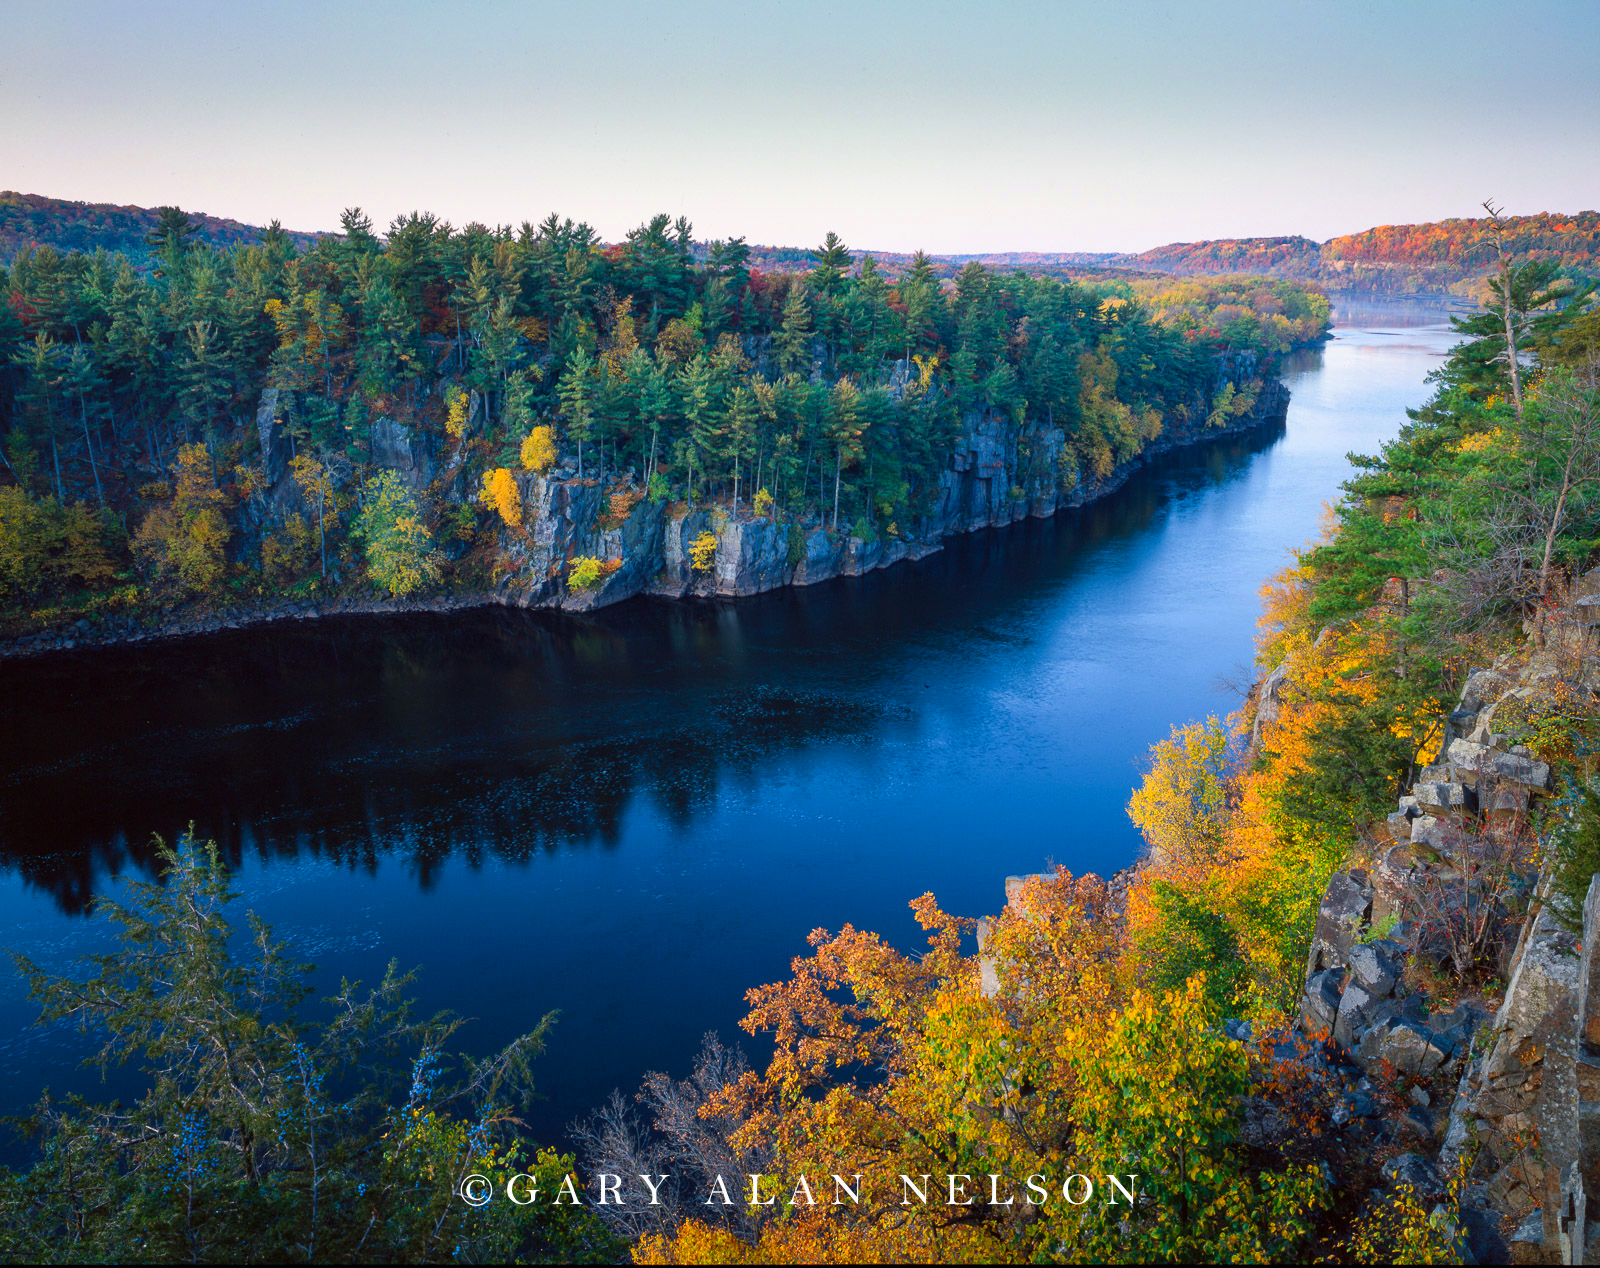 National Scenic River, croix, minnesota, st, state park, wisconsin, photo